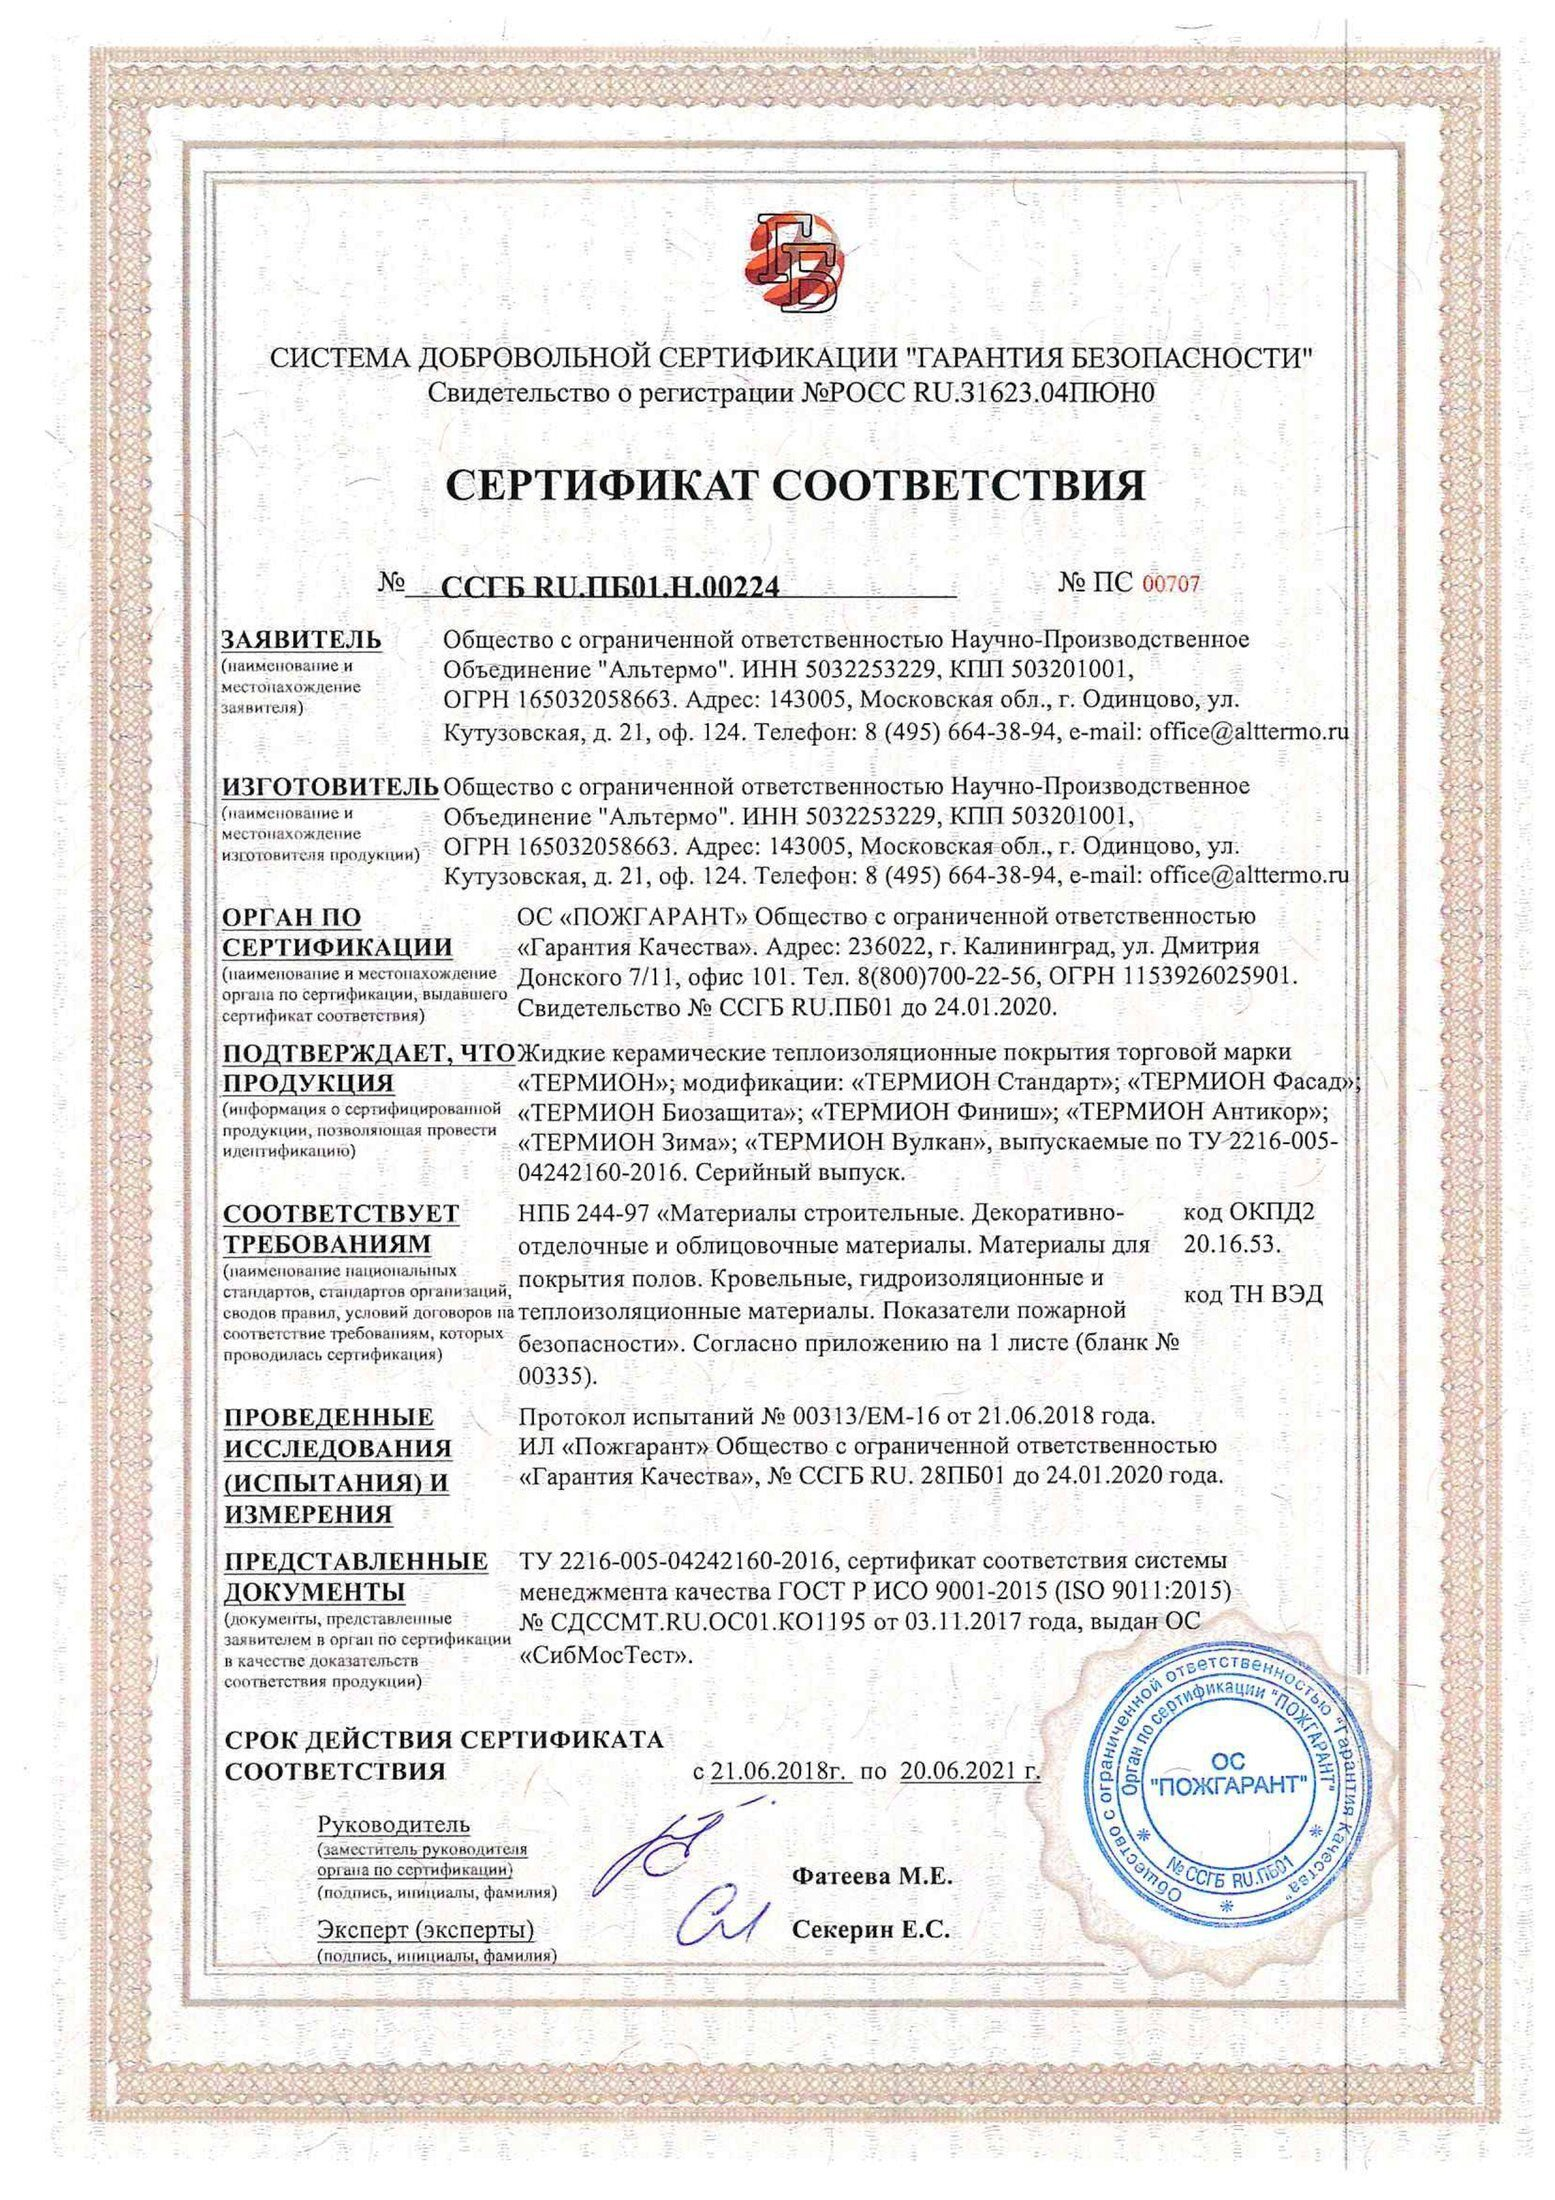 7. CERTIFICATE OF FIRE SAFETY OF LIQUID INSULATION